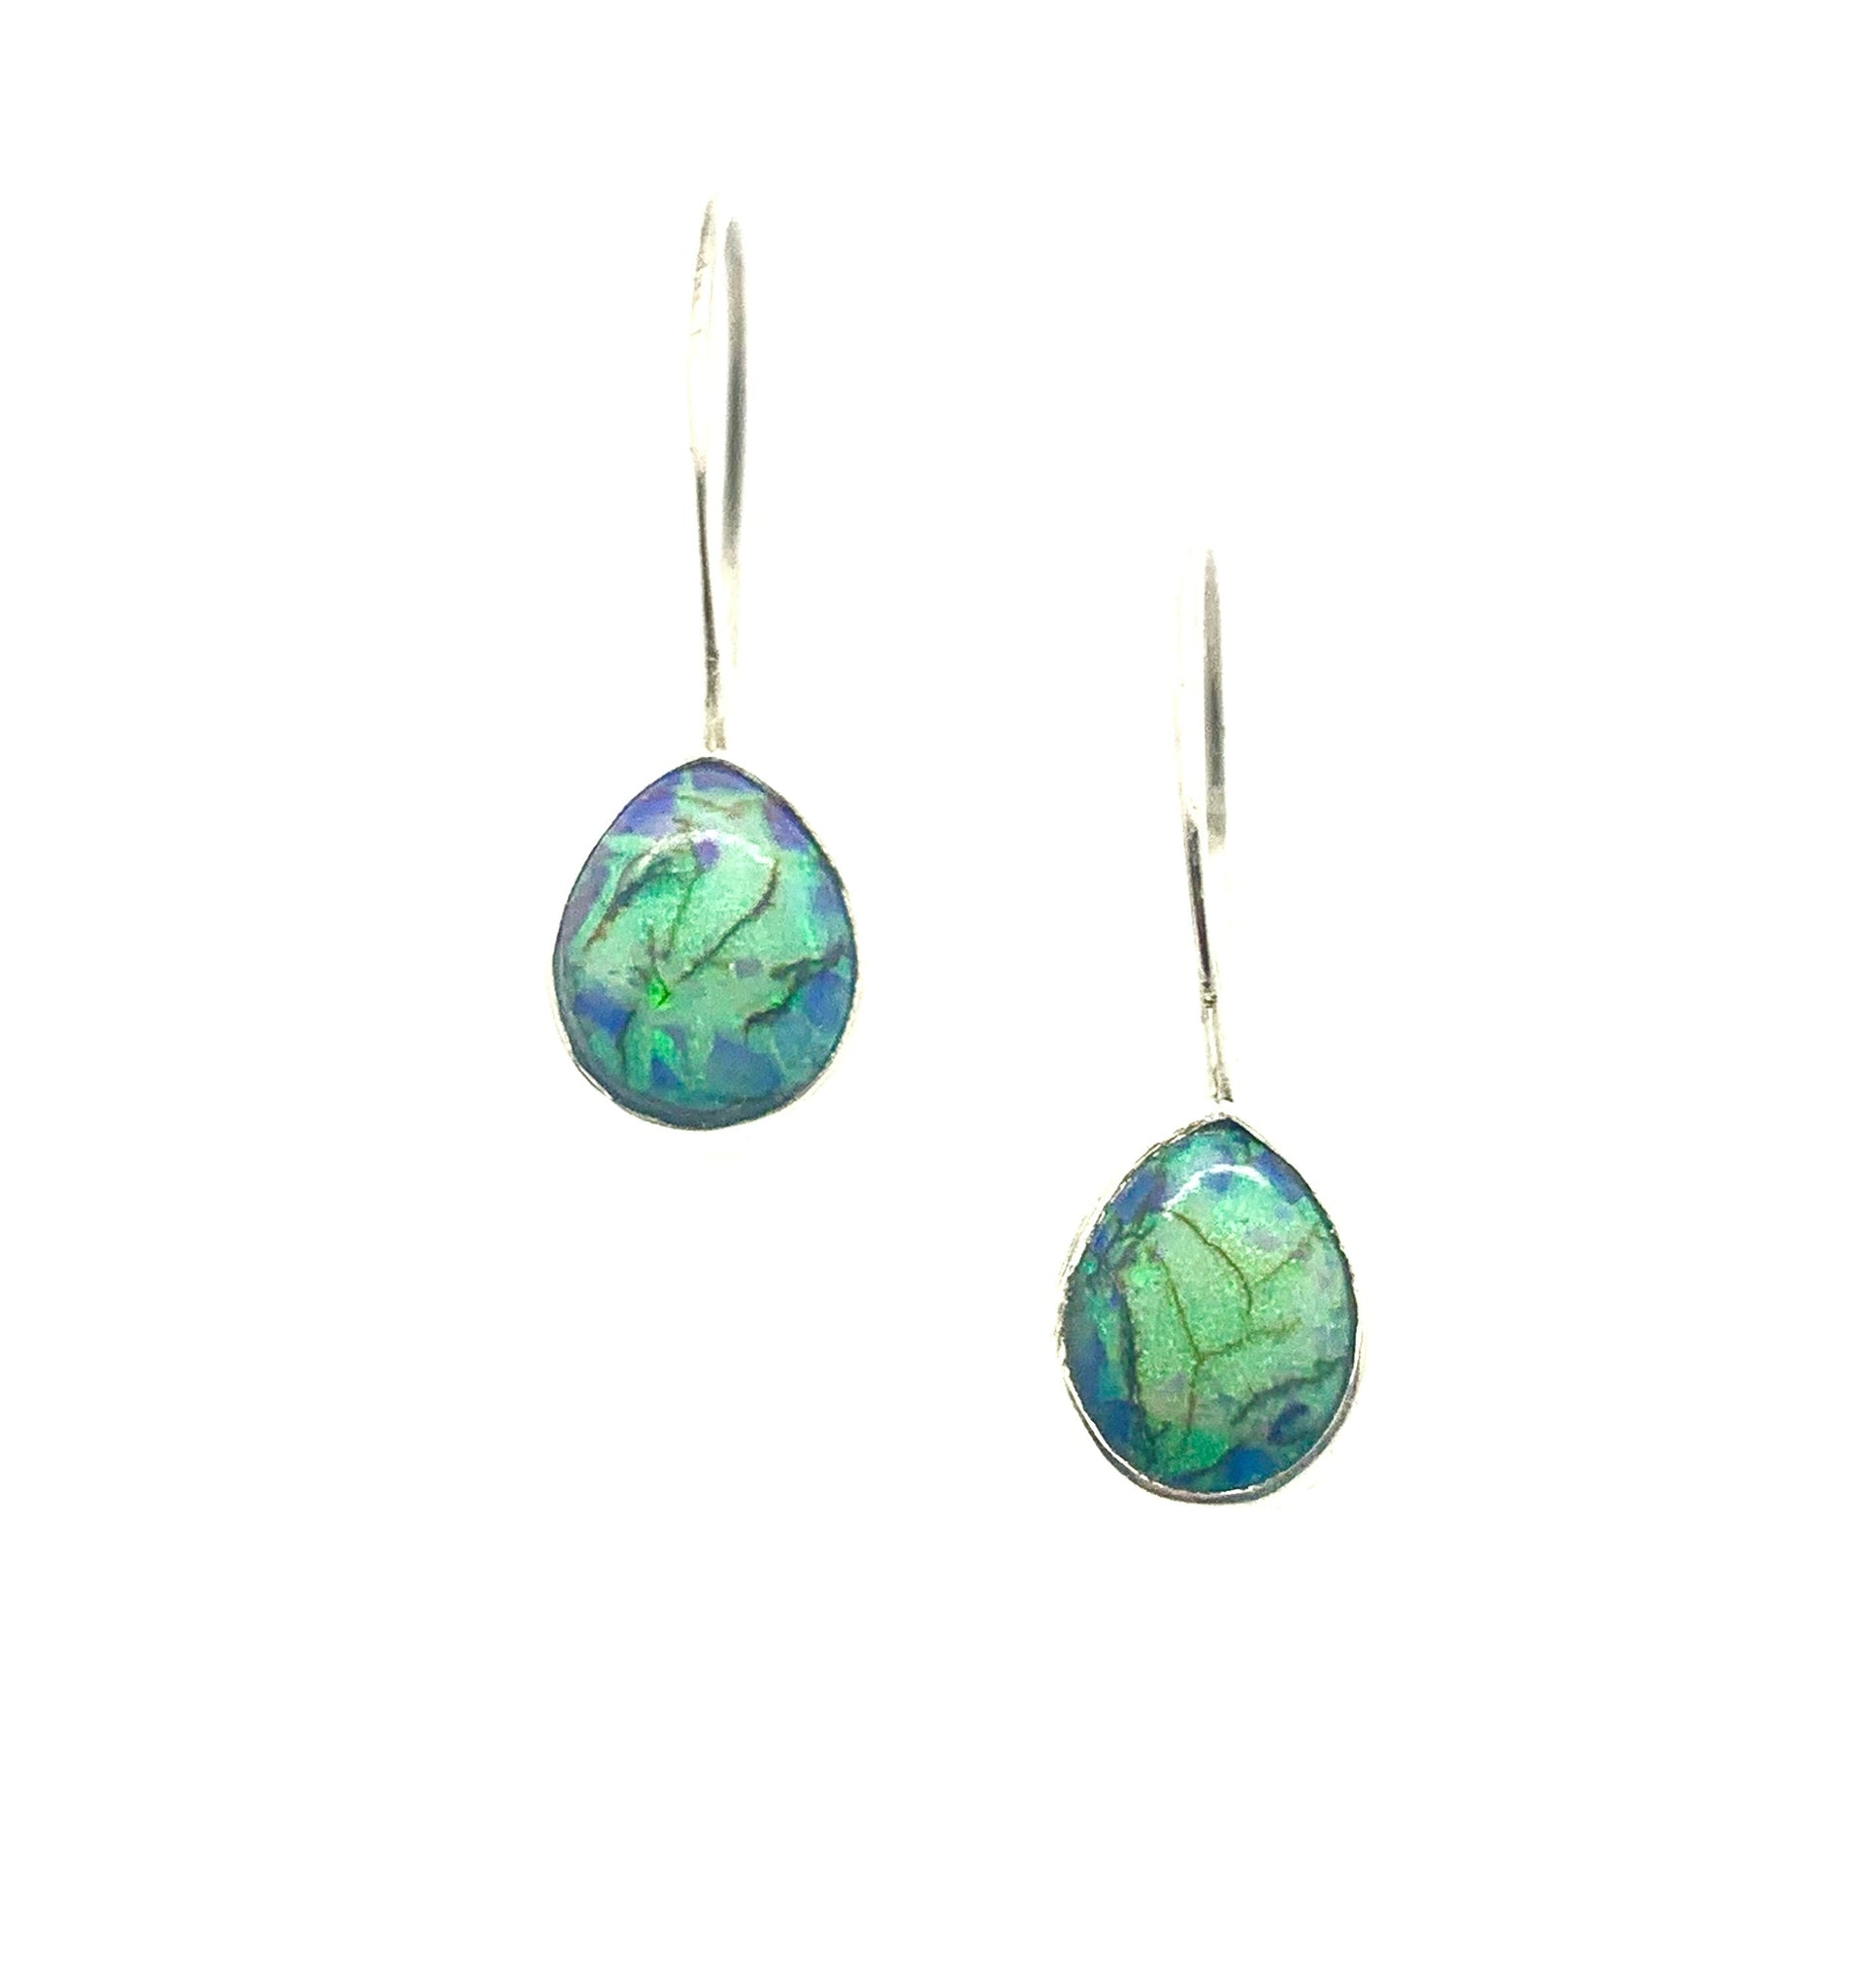 Monarch Opal Earrings, Sterling Opal Earrings, Opal drop Earrings, October birthstone earrings, Blue Stone Jewelry